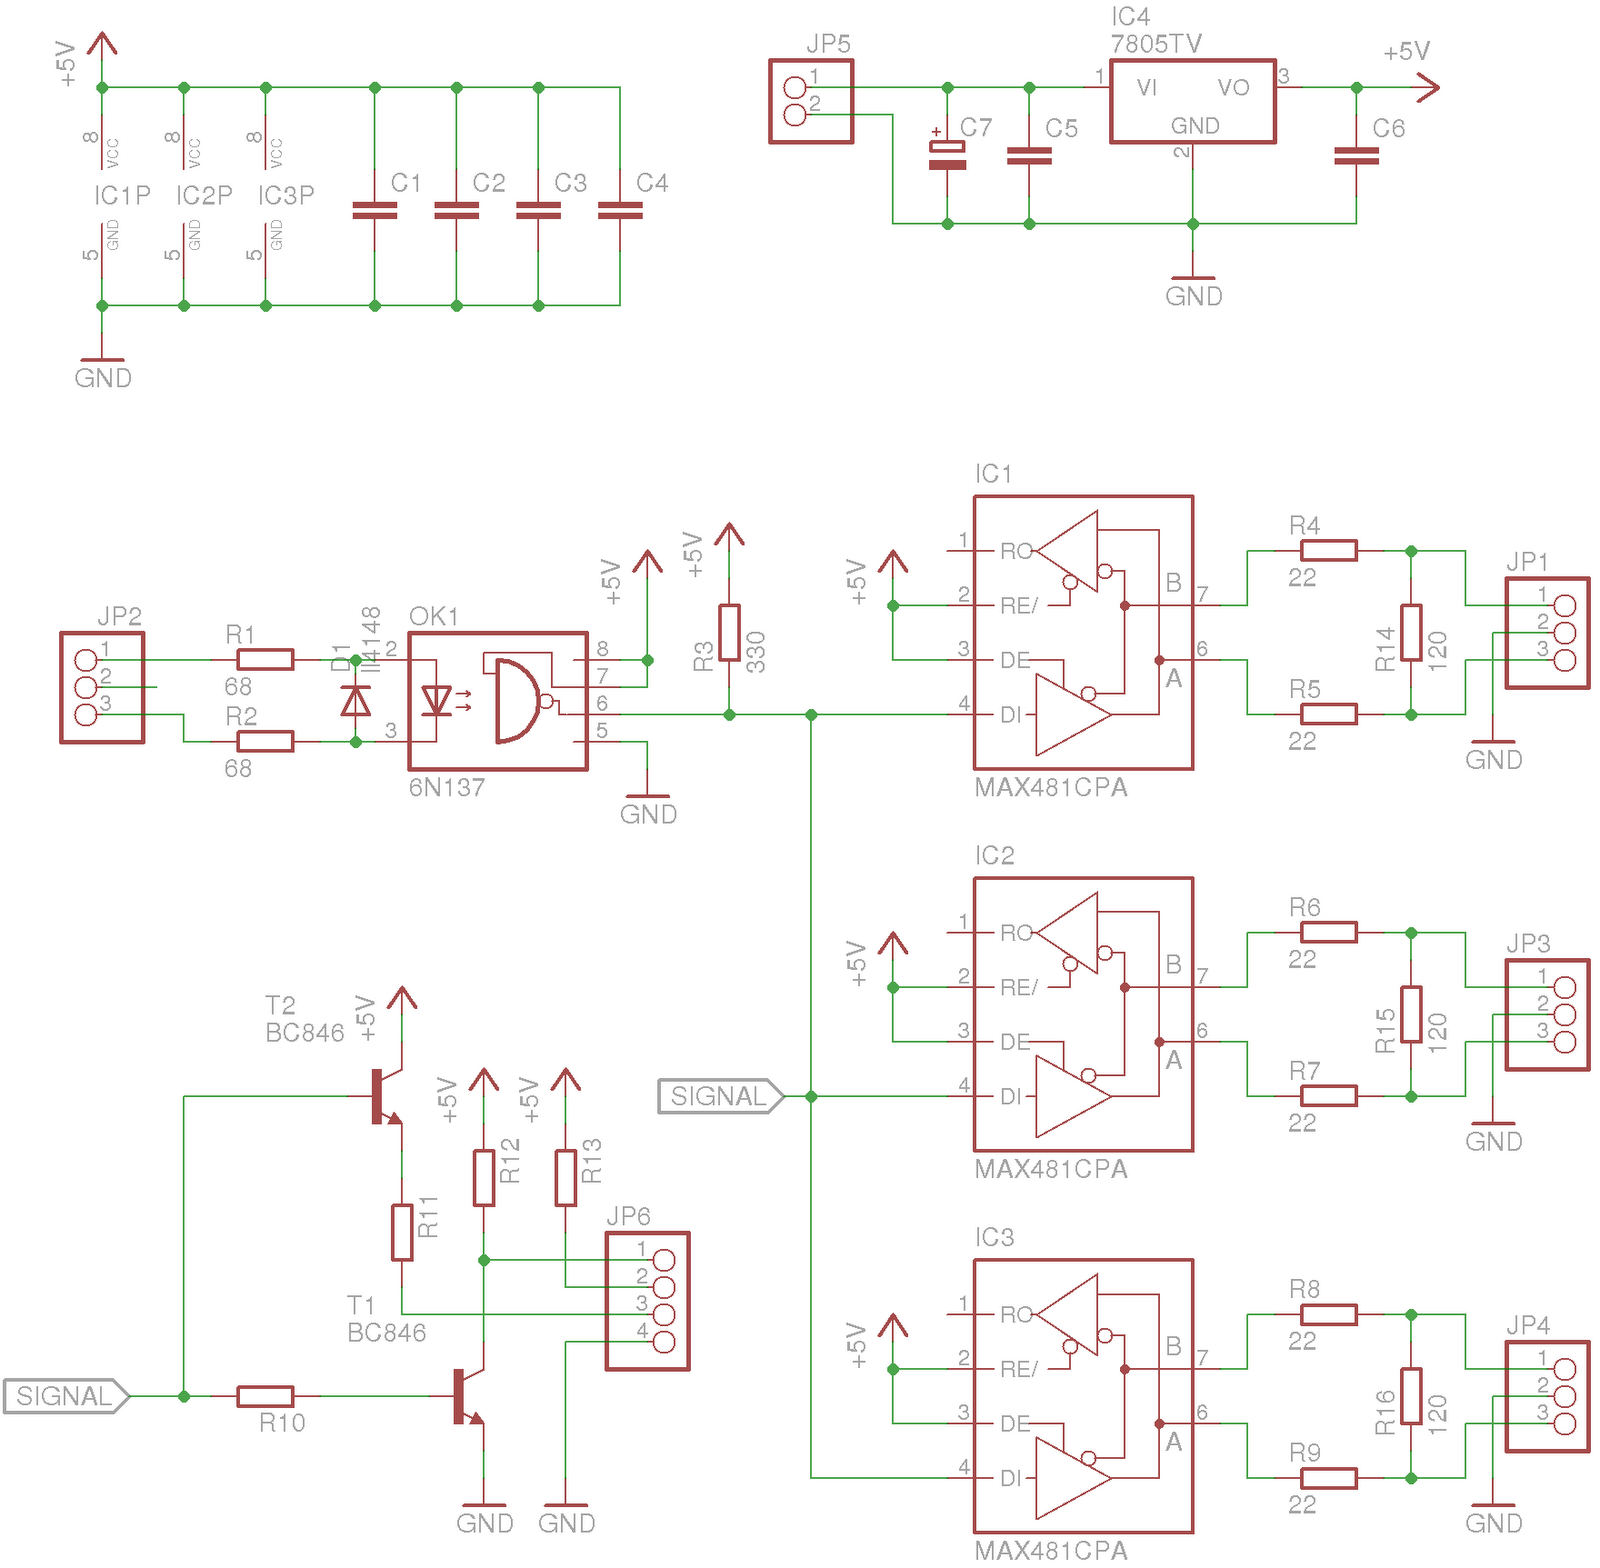 Wiring 4 Way Dmx Great Design Of Diagram Cable Connector This Is The Schematic For A Dmxbooster Get